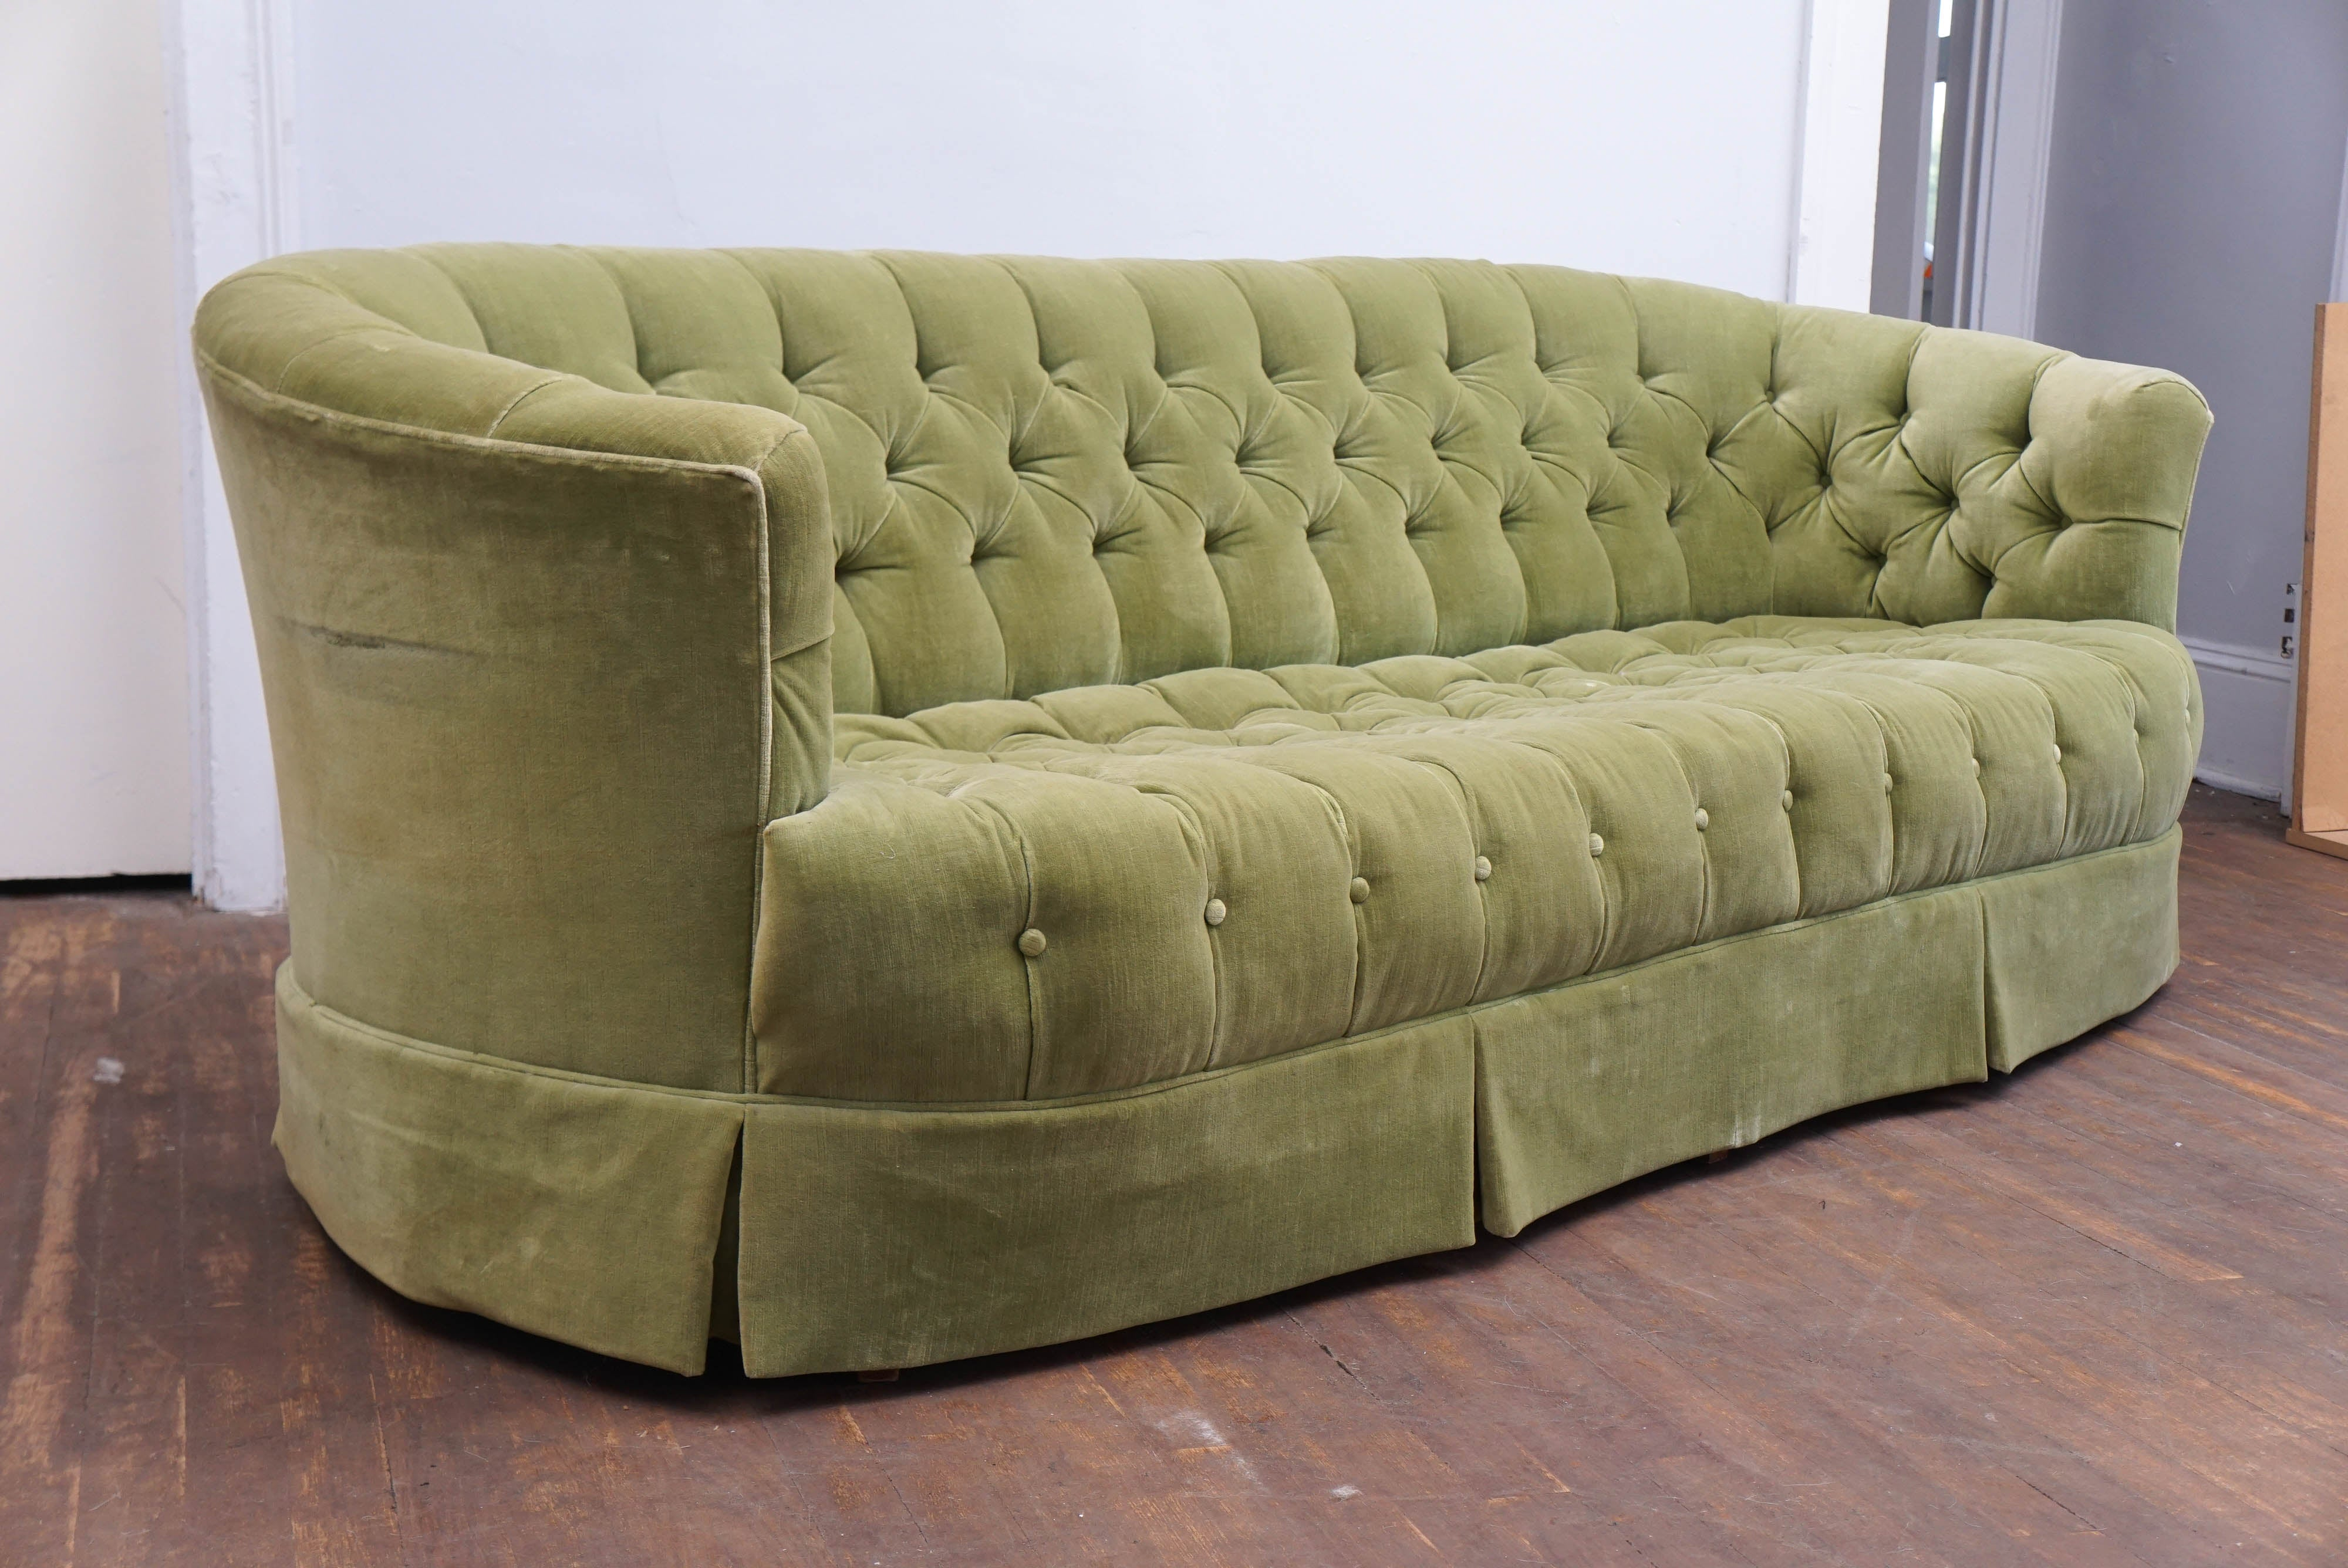 sea settee french wooden white tufted with foam sadie green frame pin distressed loveseat velvet